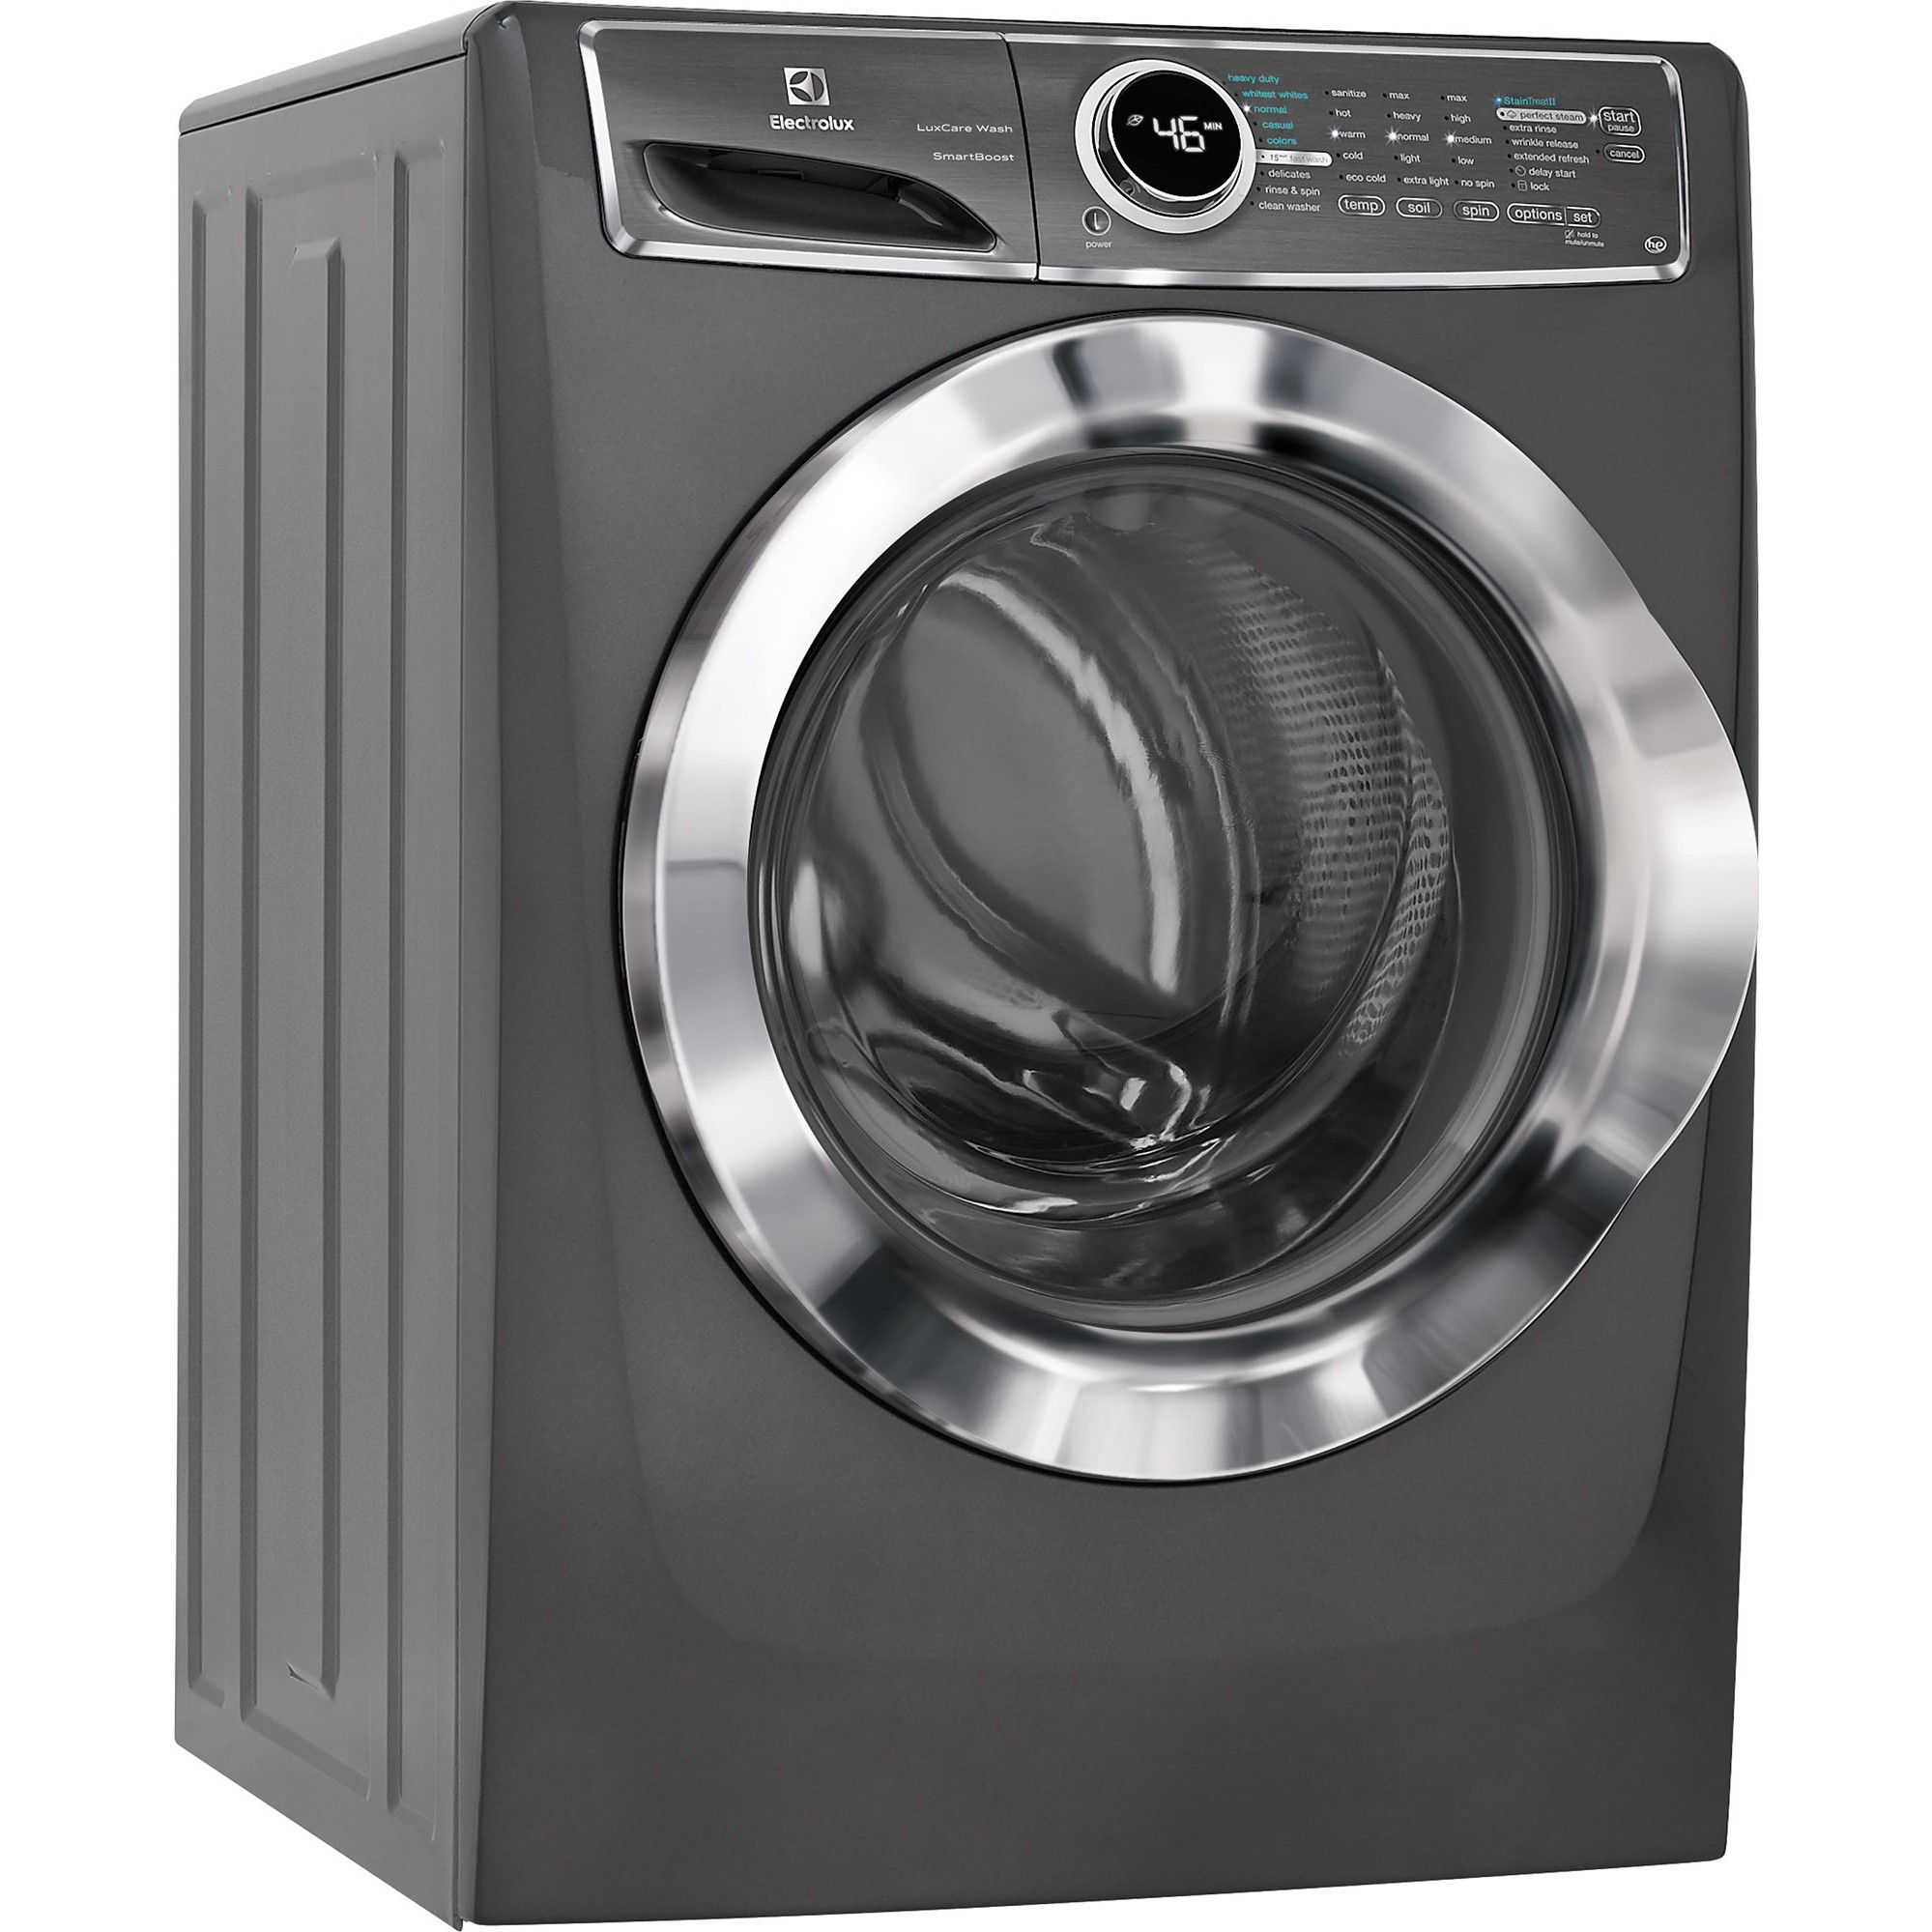 best washer front ft duet whirlpool pedestal cycle steel gray loading p site buy cu graphite lg